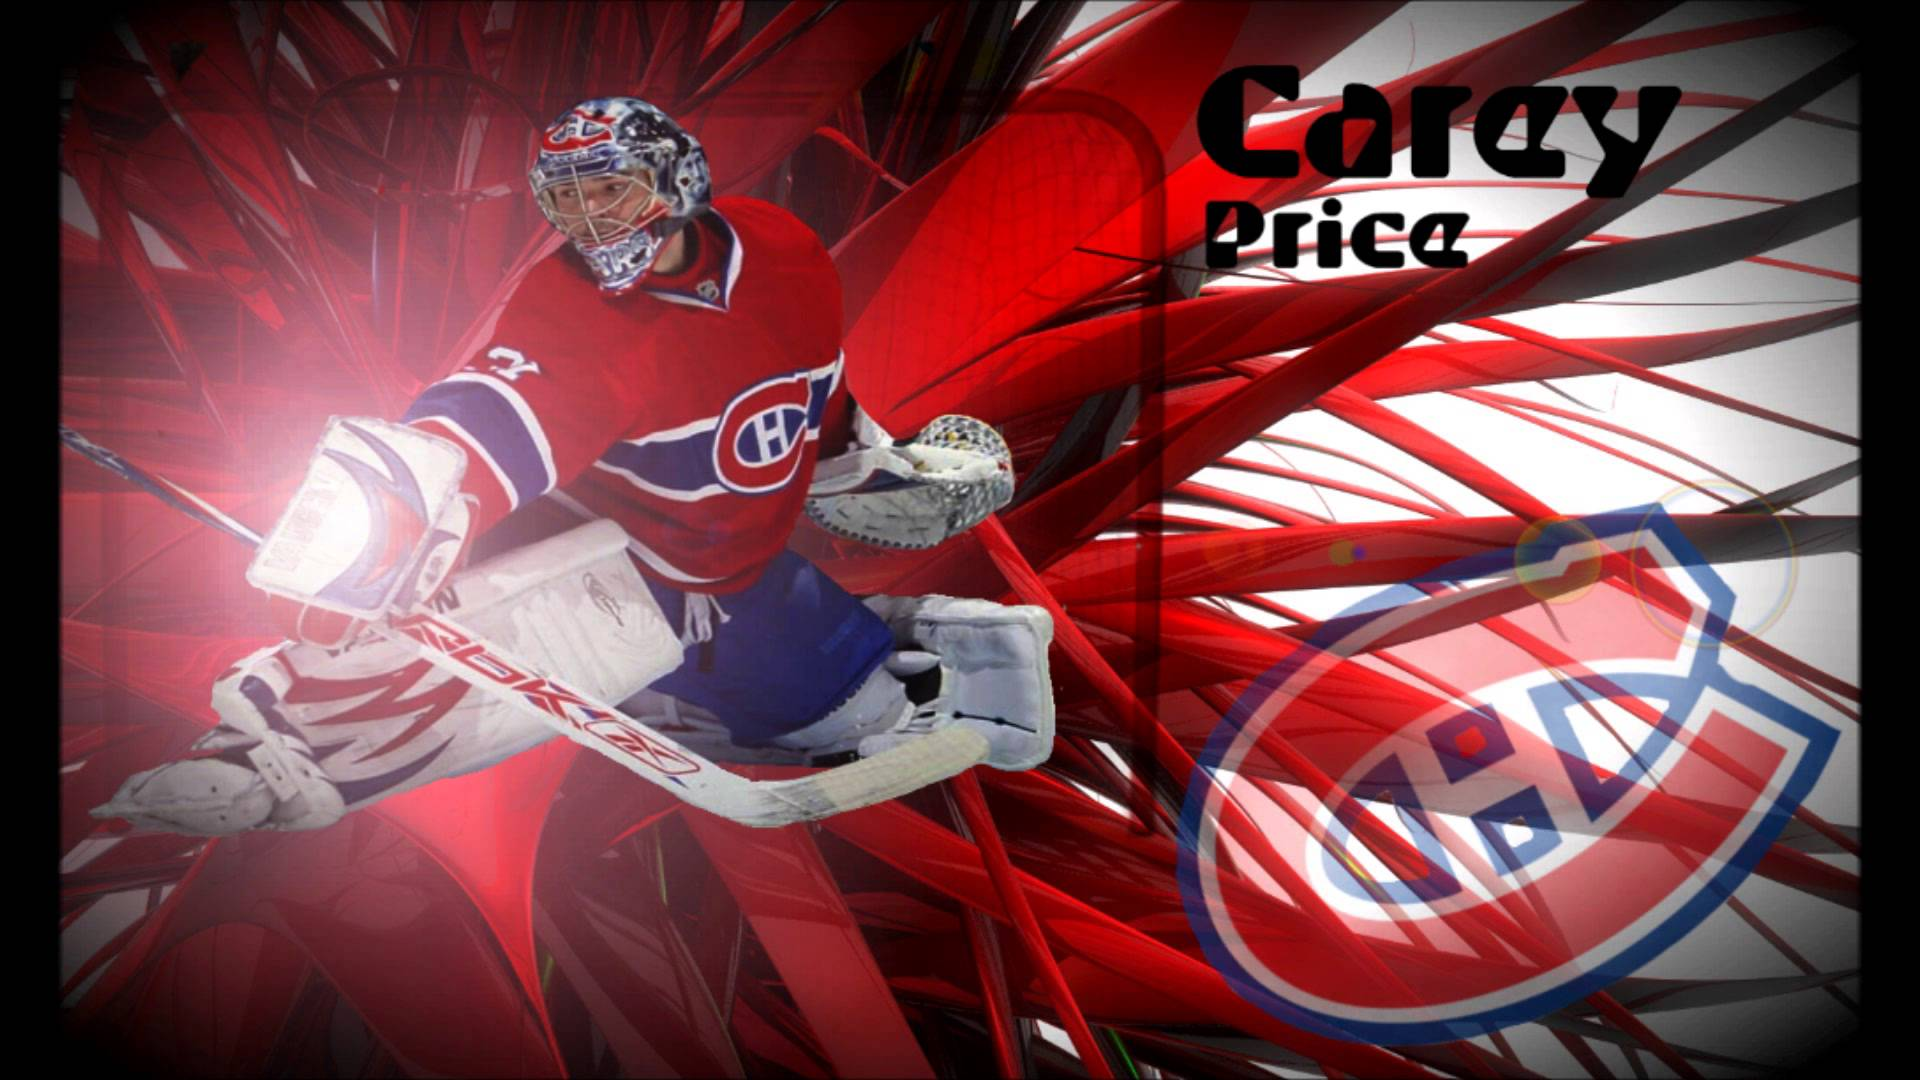 Montreal Canadiens images Montreal Canadiens - Carey Price HD wallpaper and  background photos